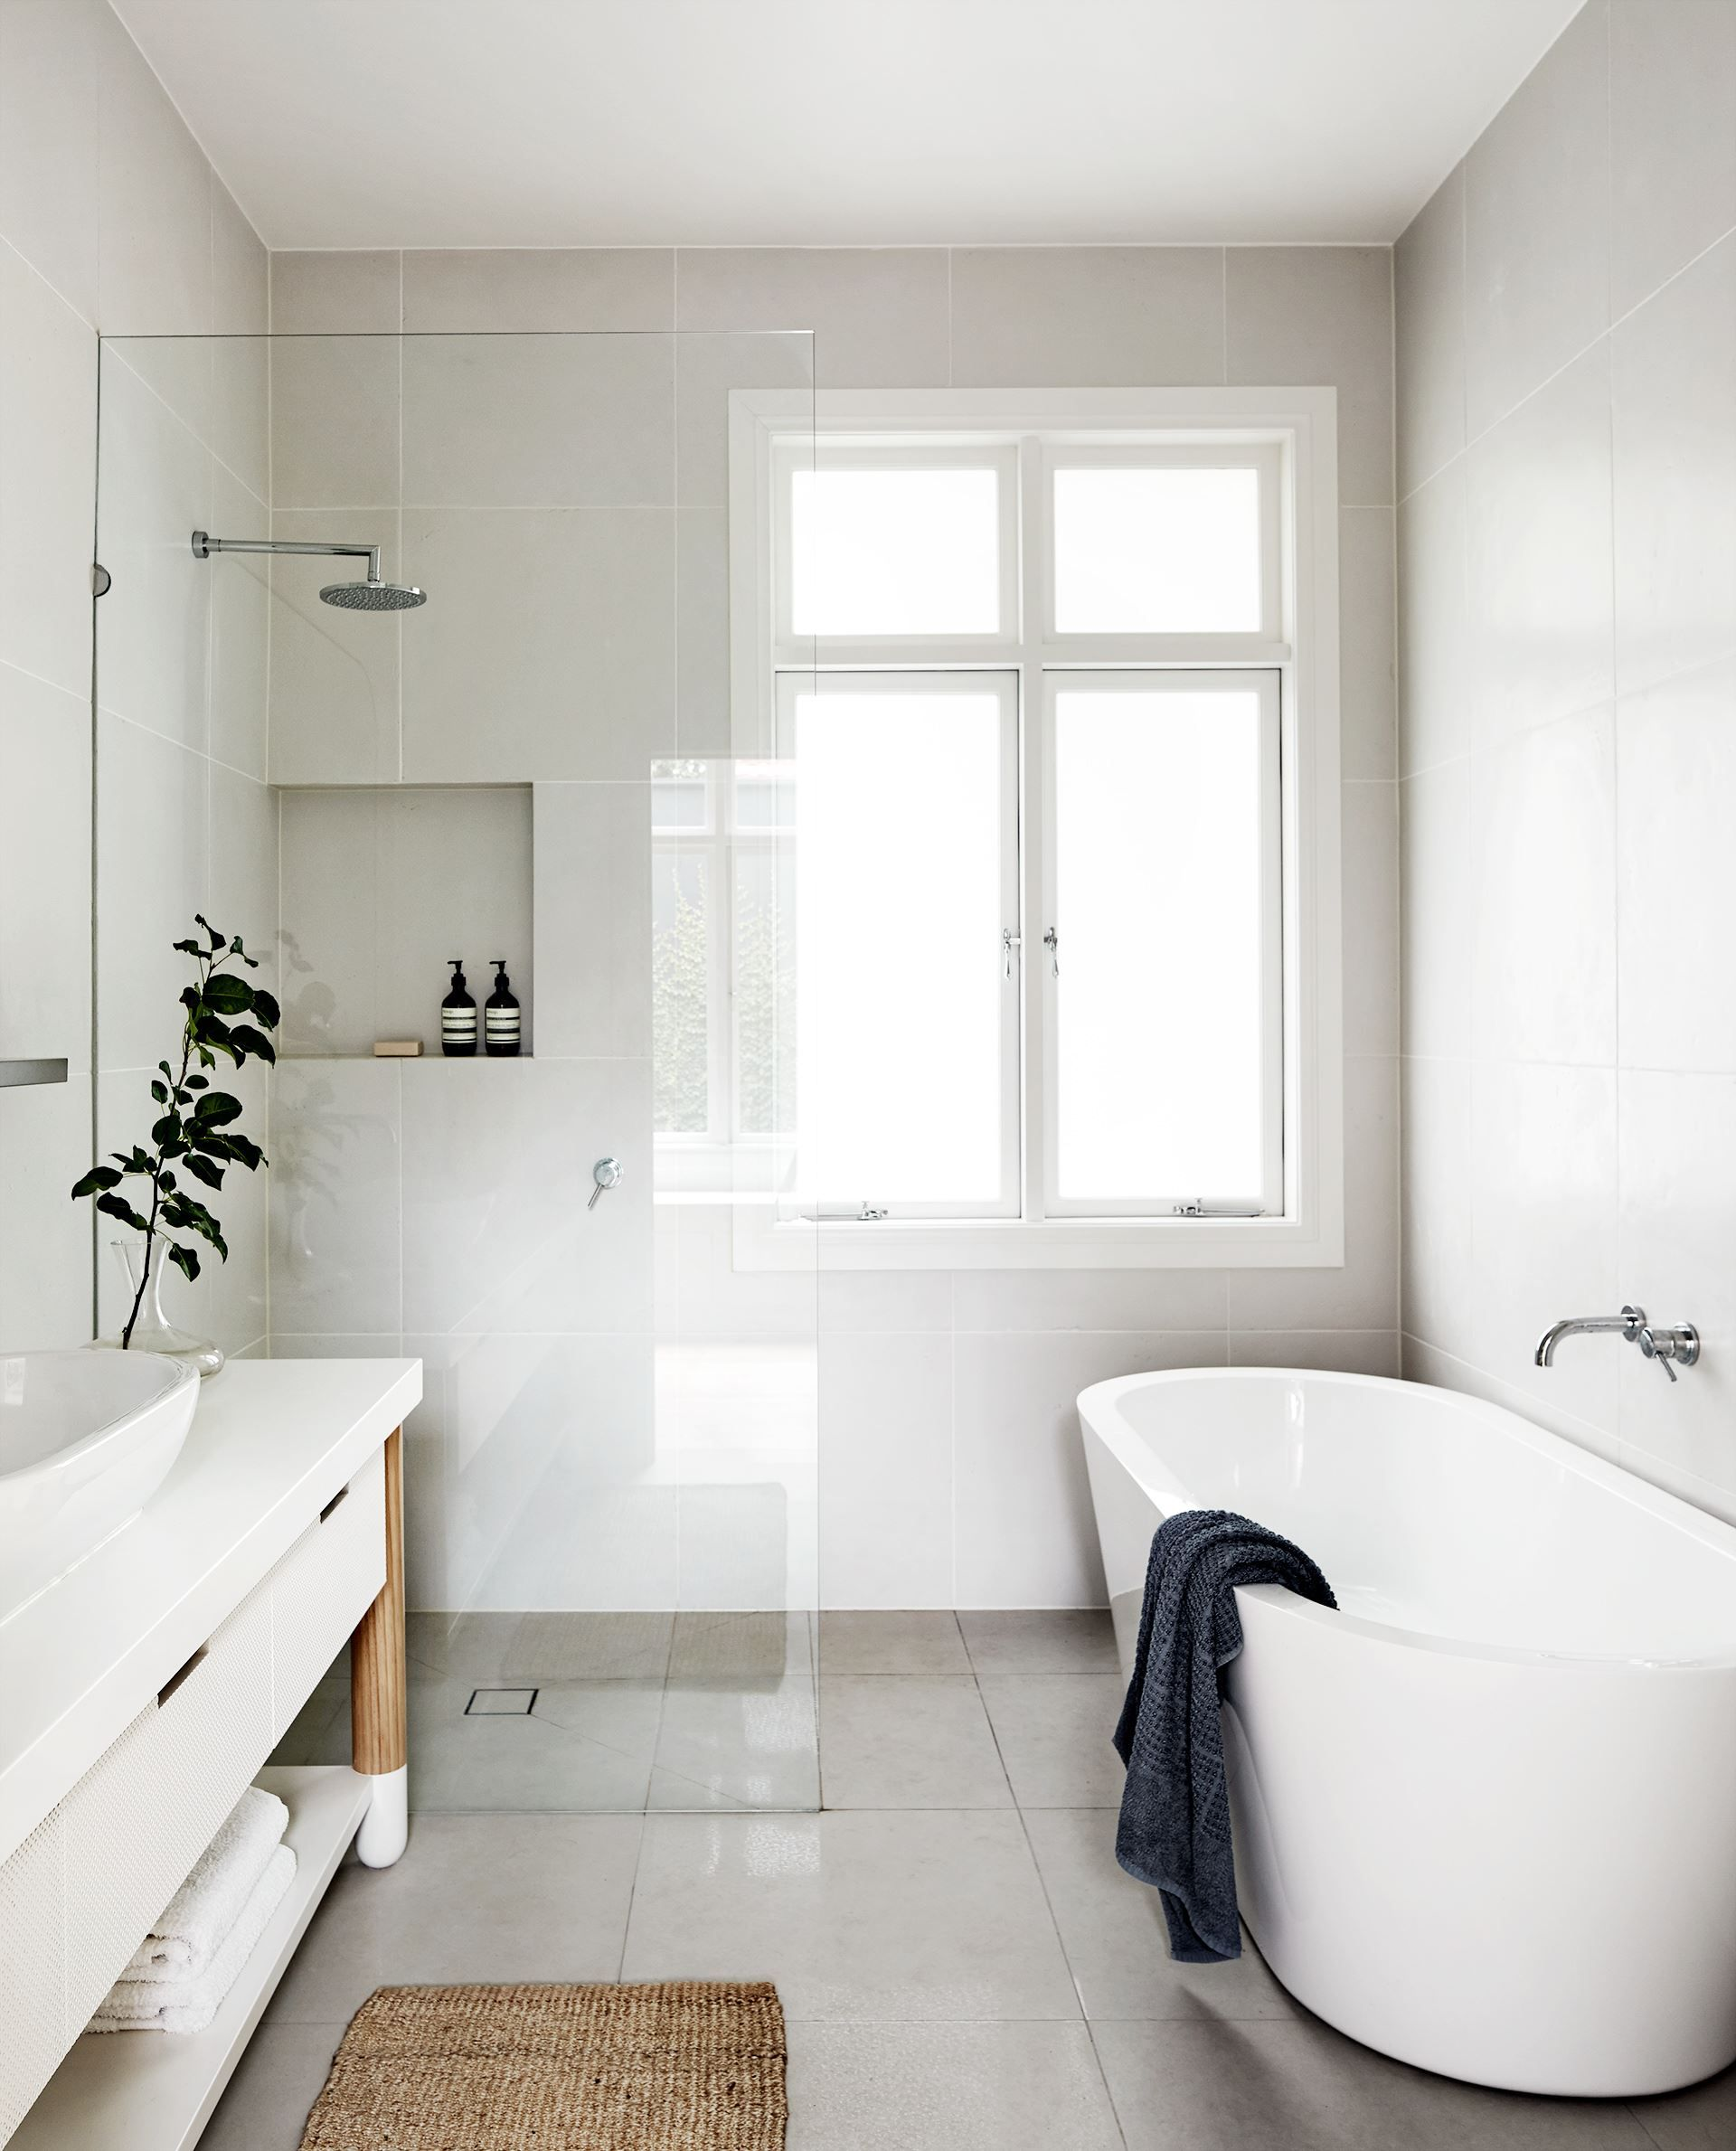 Stylish Remodeling Ideas for Small Bathrooms | Bañera, Baños y Baño